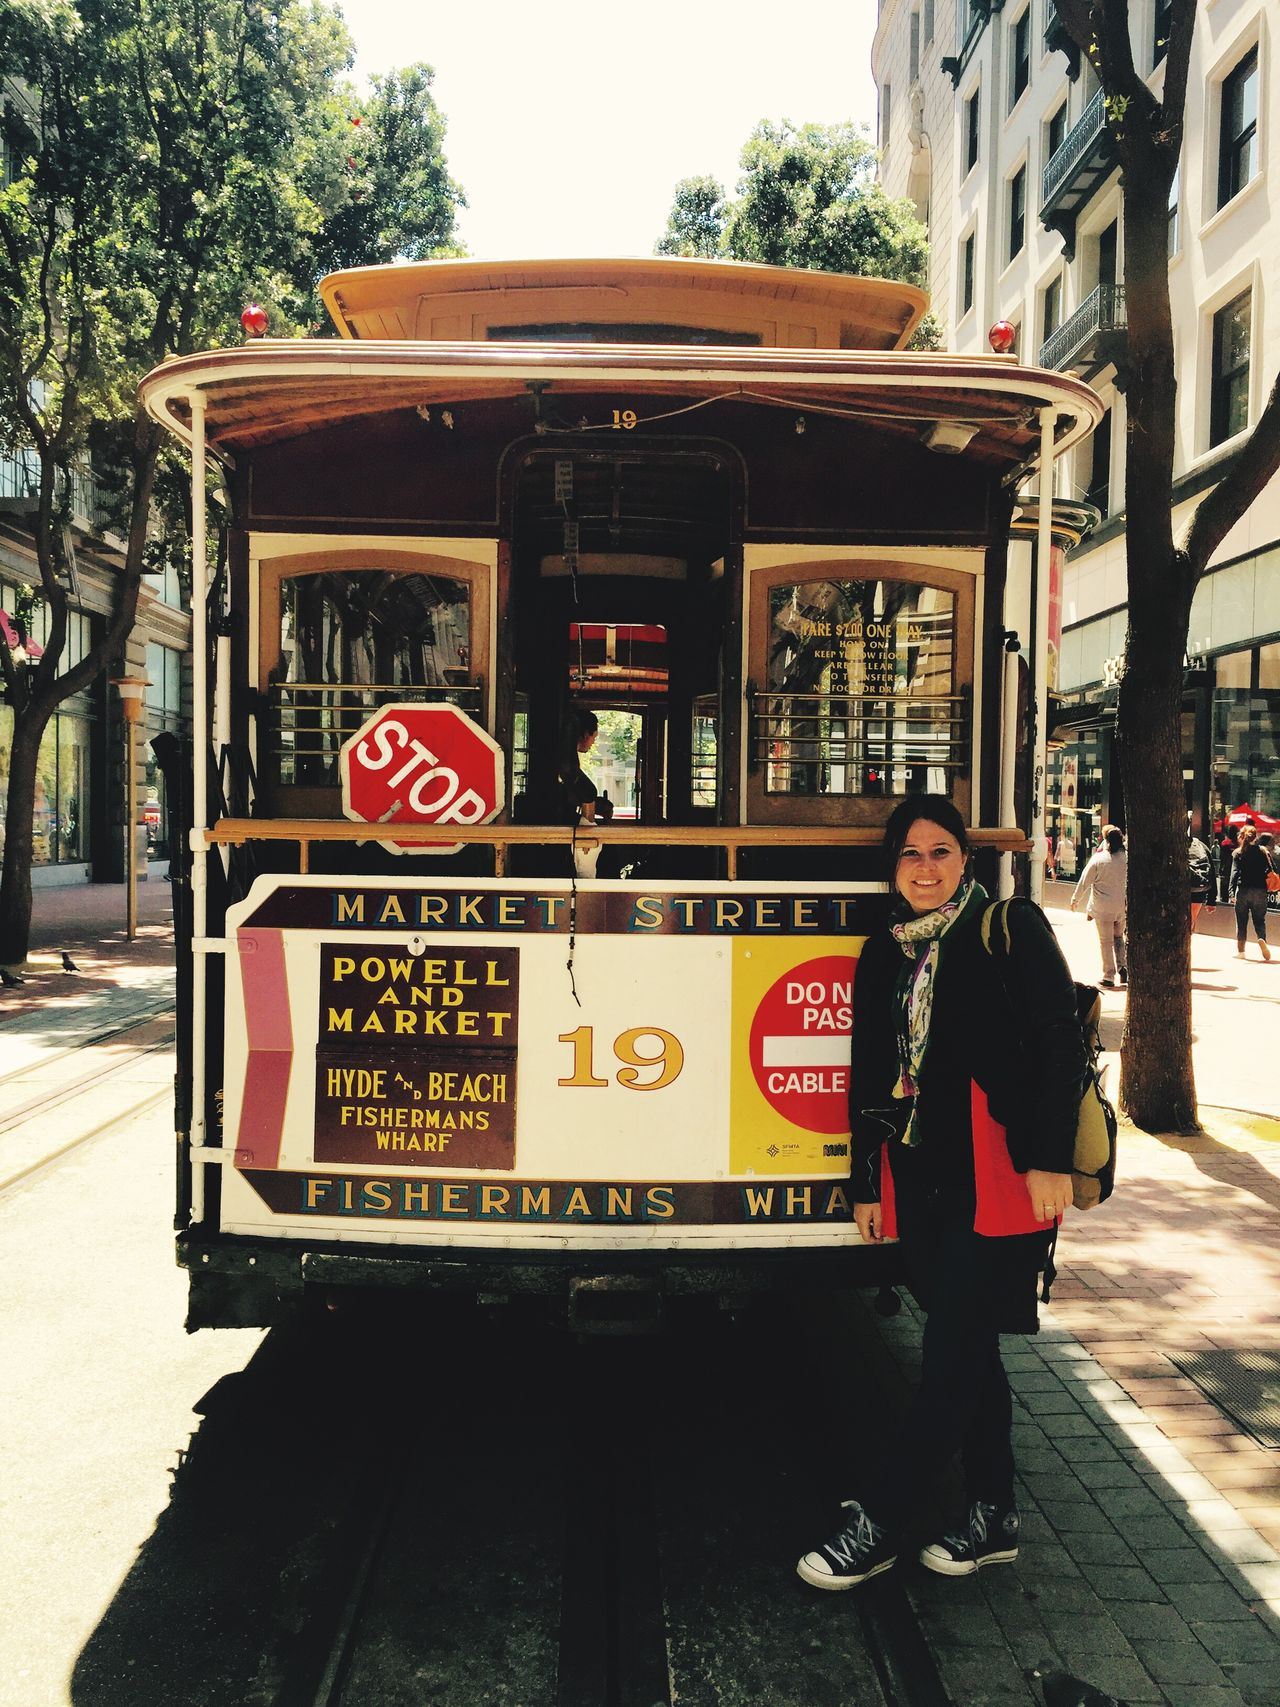 San Francisco Street Cable Car Cable Car Tracks Mid Adult Outdoors City Travel Destinations One Person Real People Adult Day Road Trip